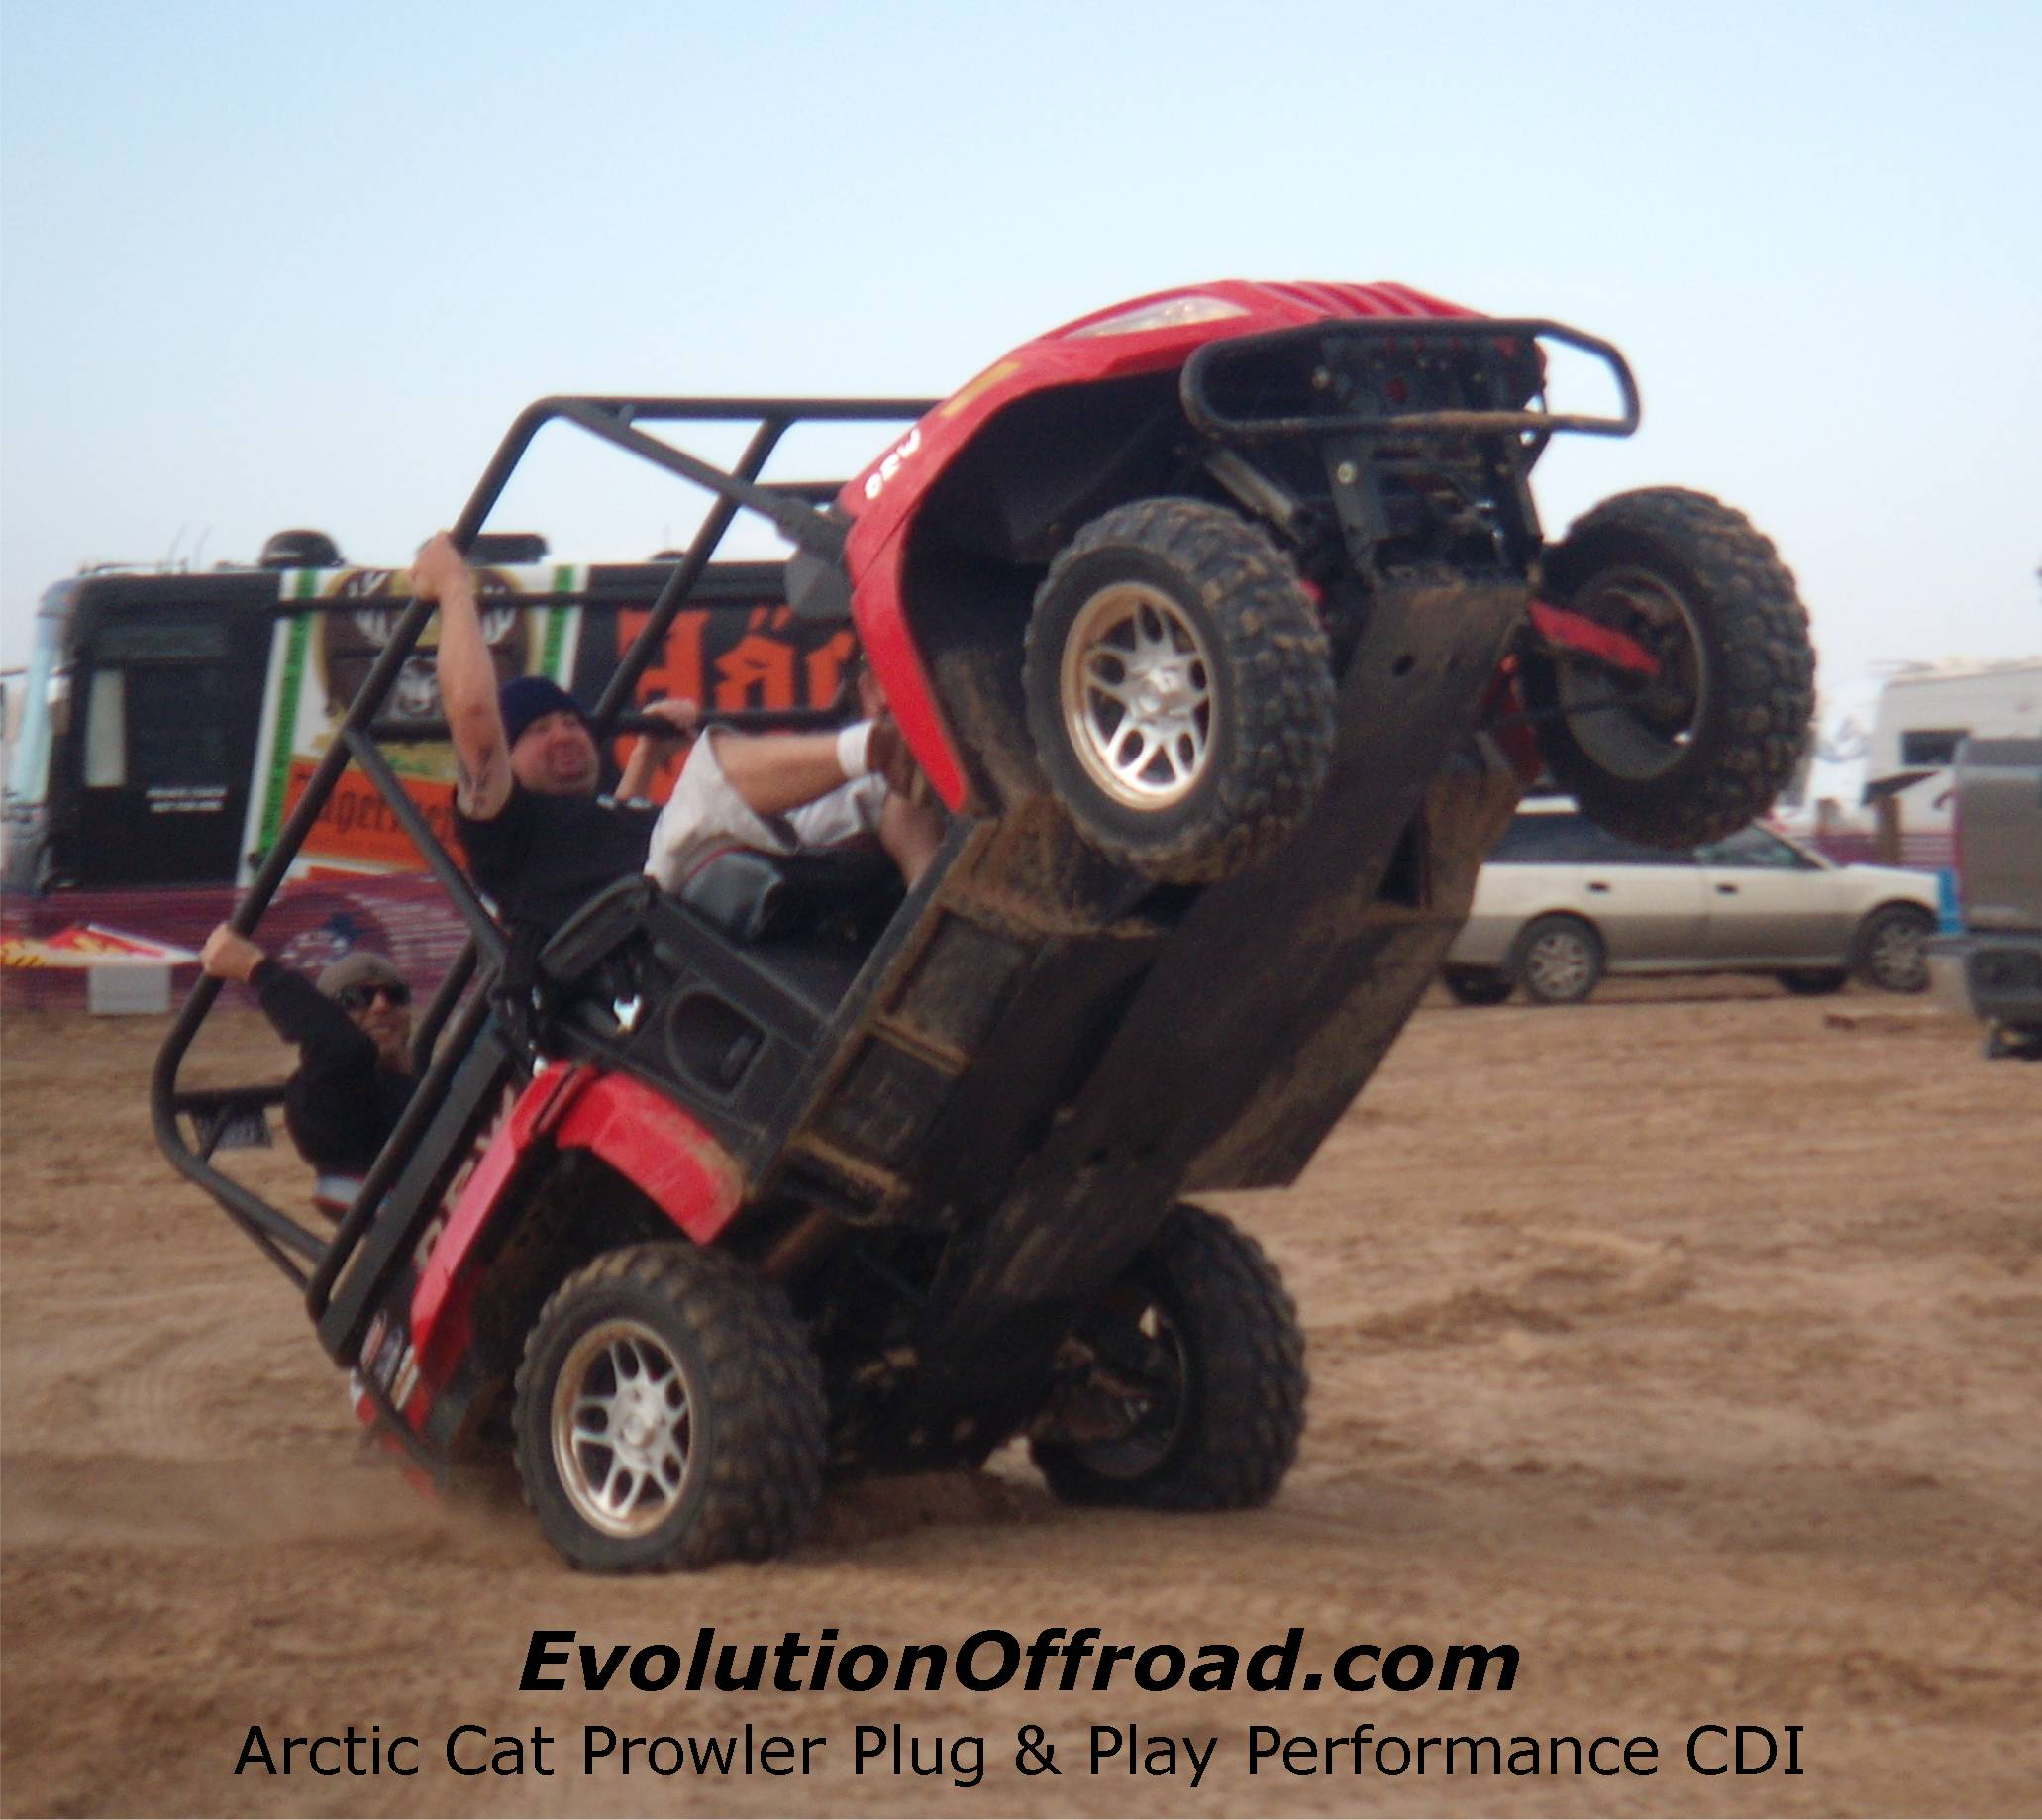 Evolution off road announces plug and play power for arctic cat